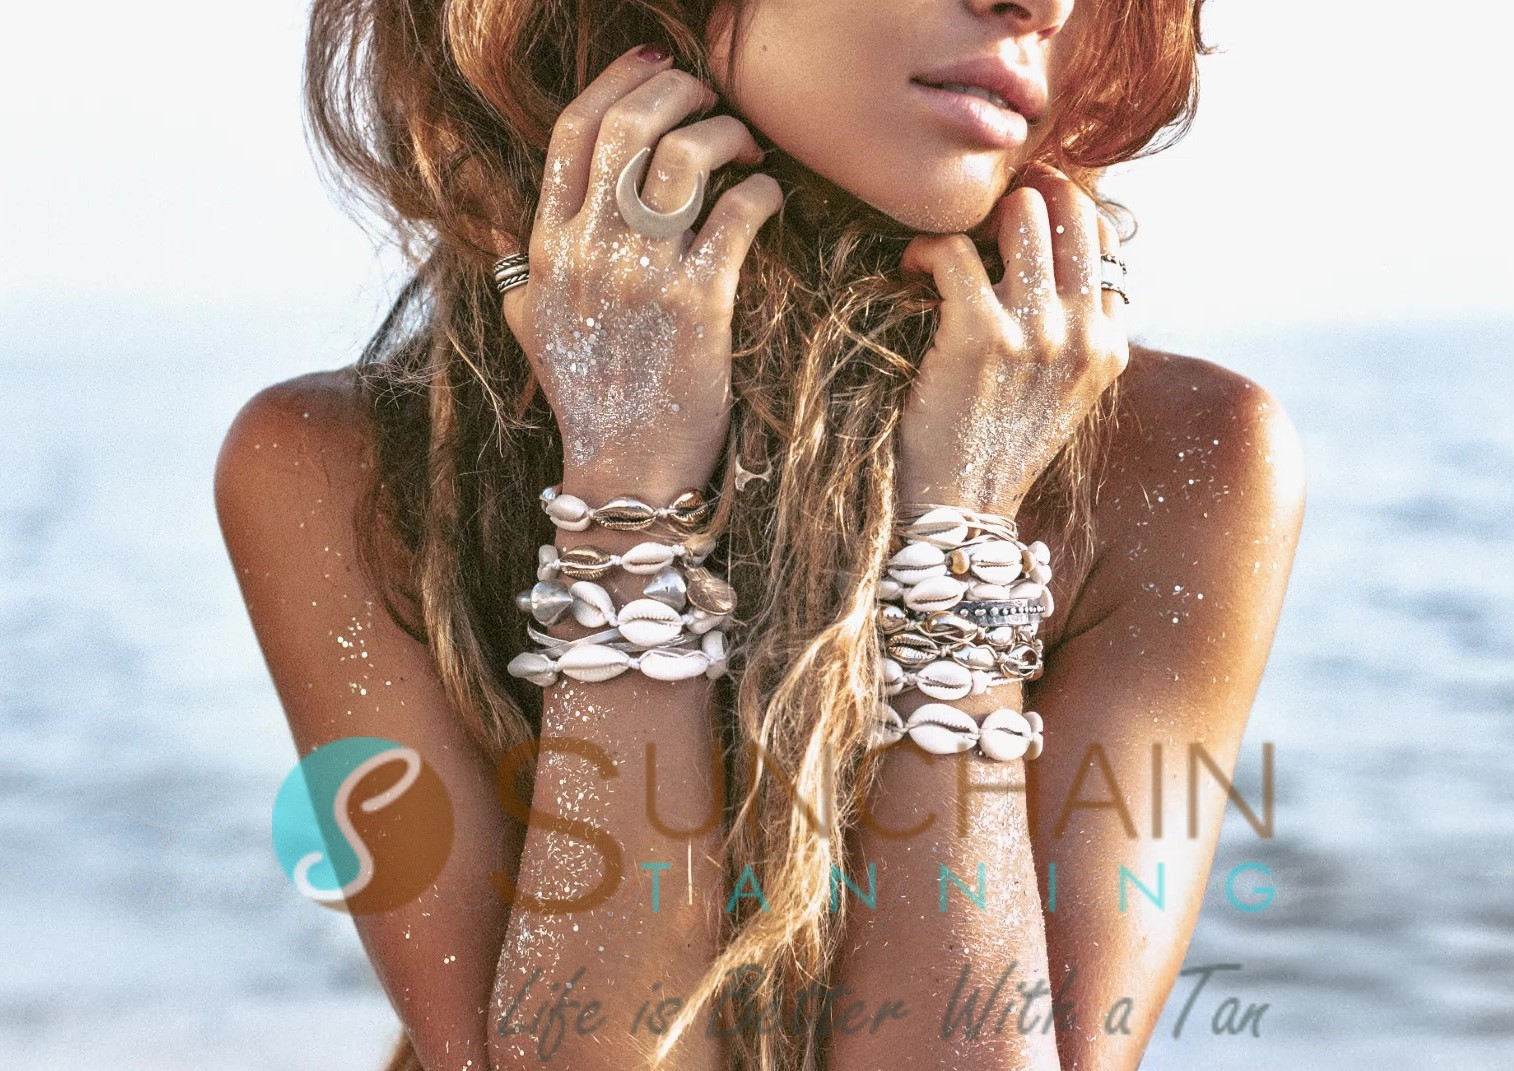 Sunchain Tanning - Life is better with a tan